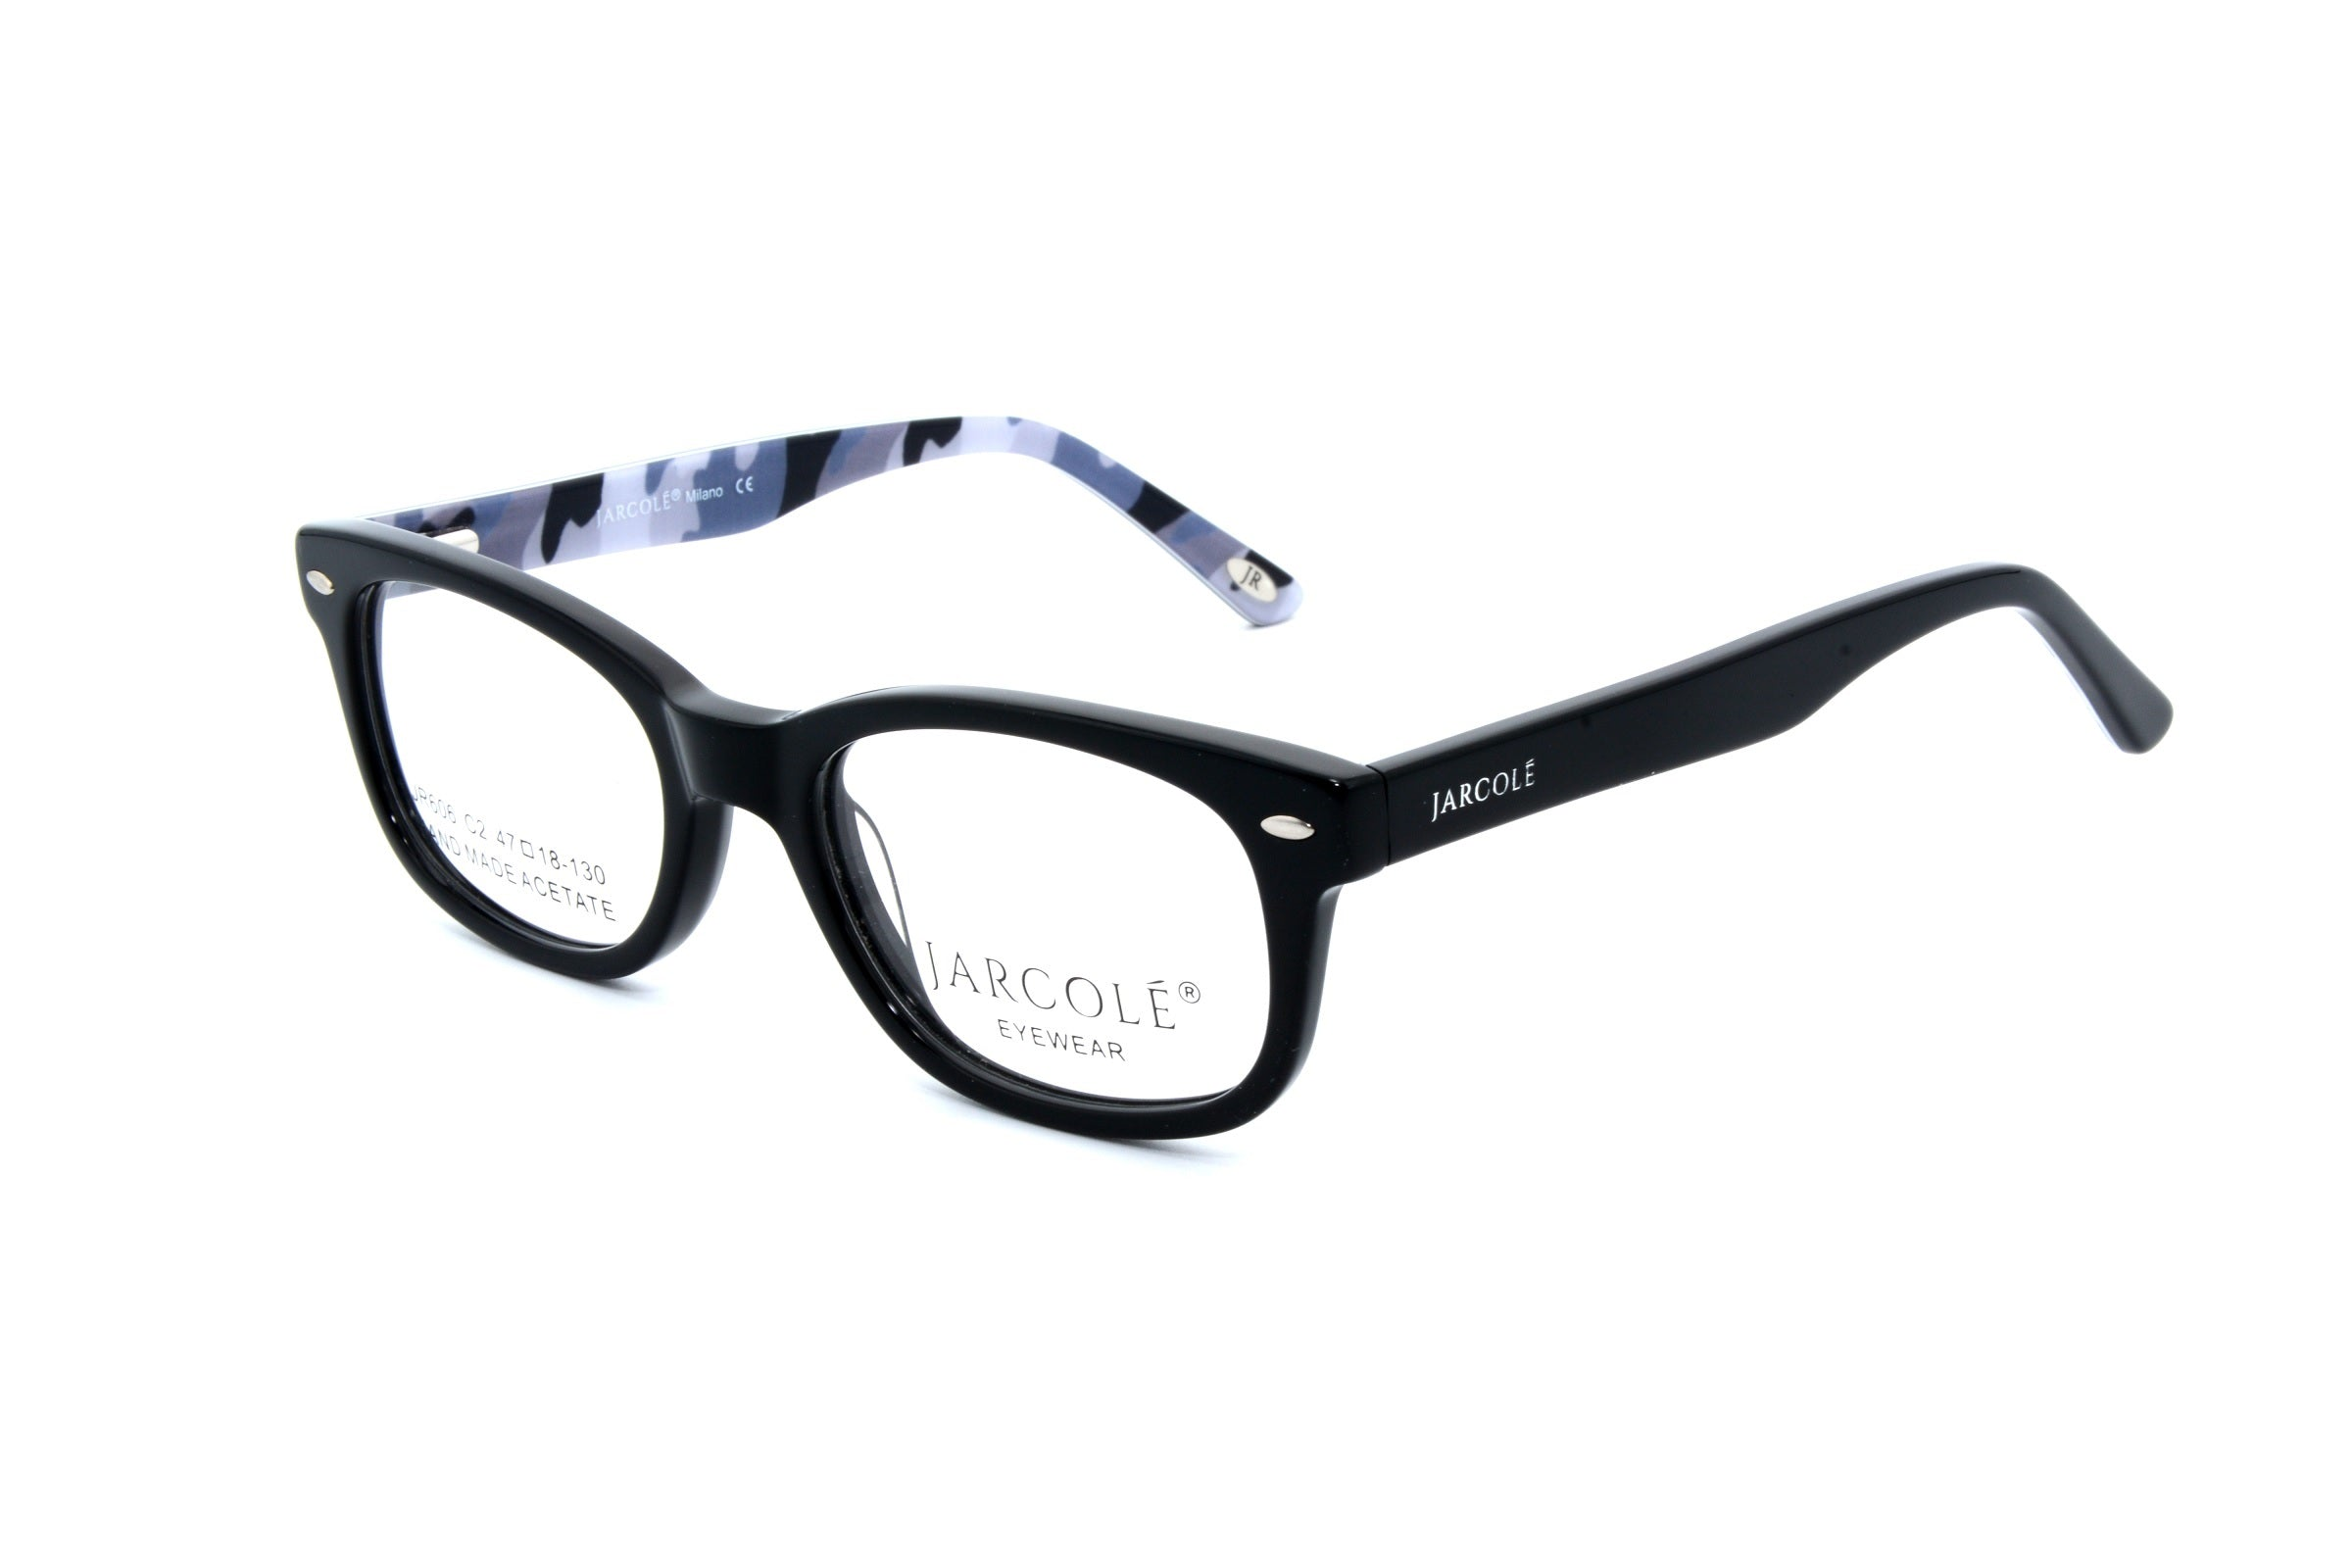 Jarcole eyewear 605, C2 - Optics Trading